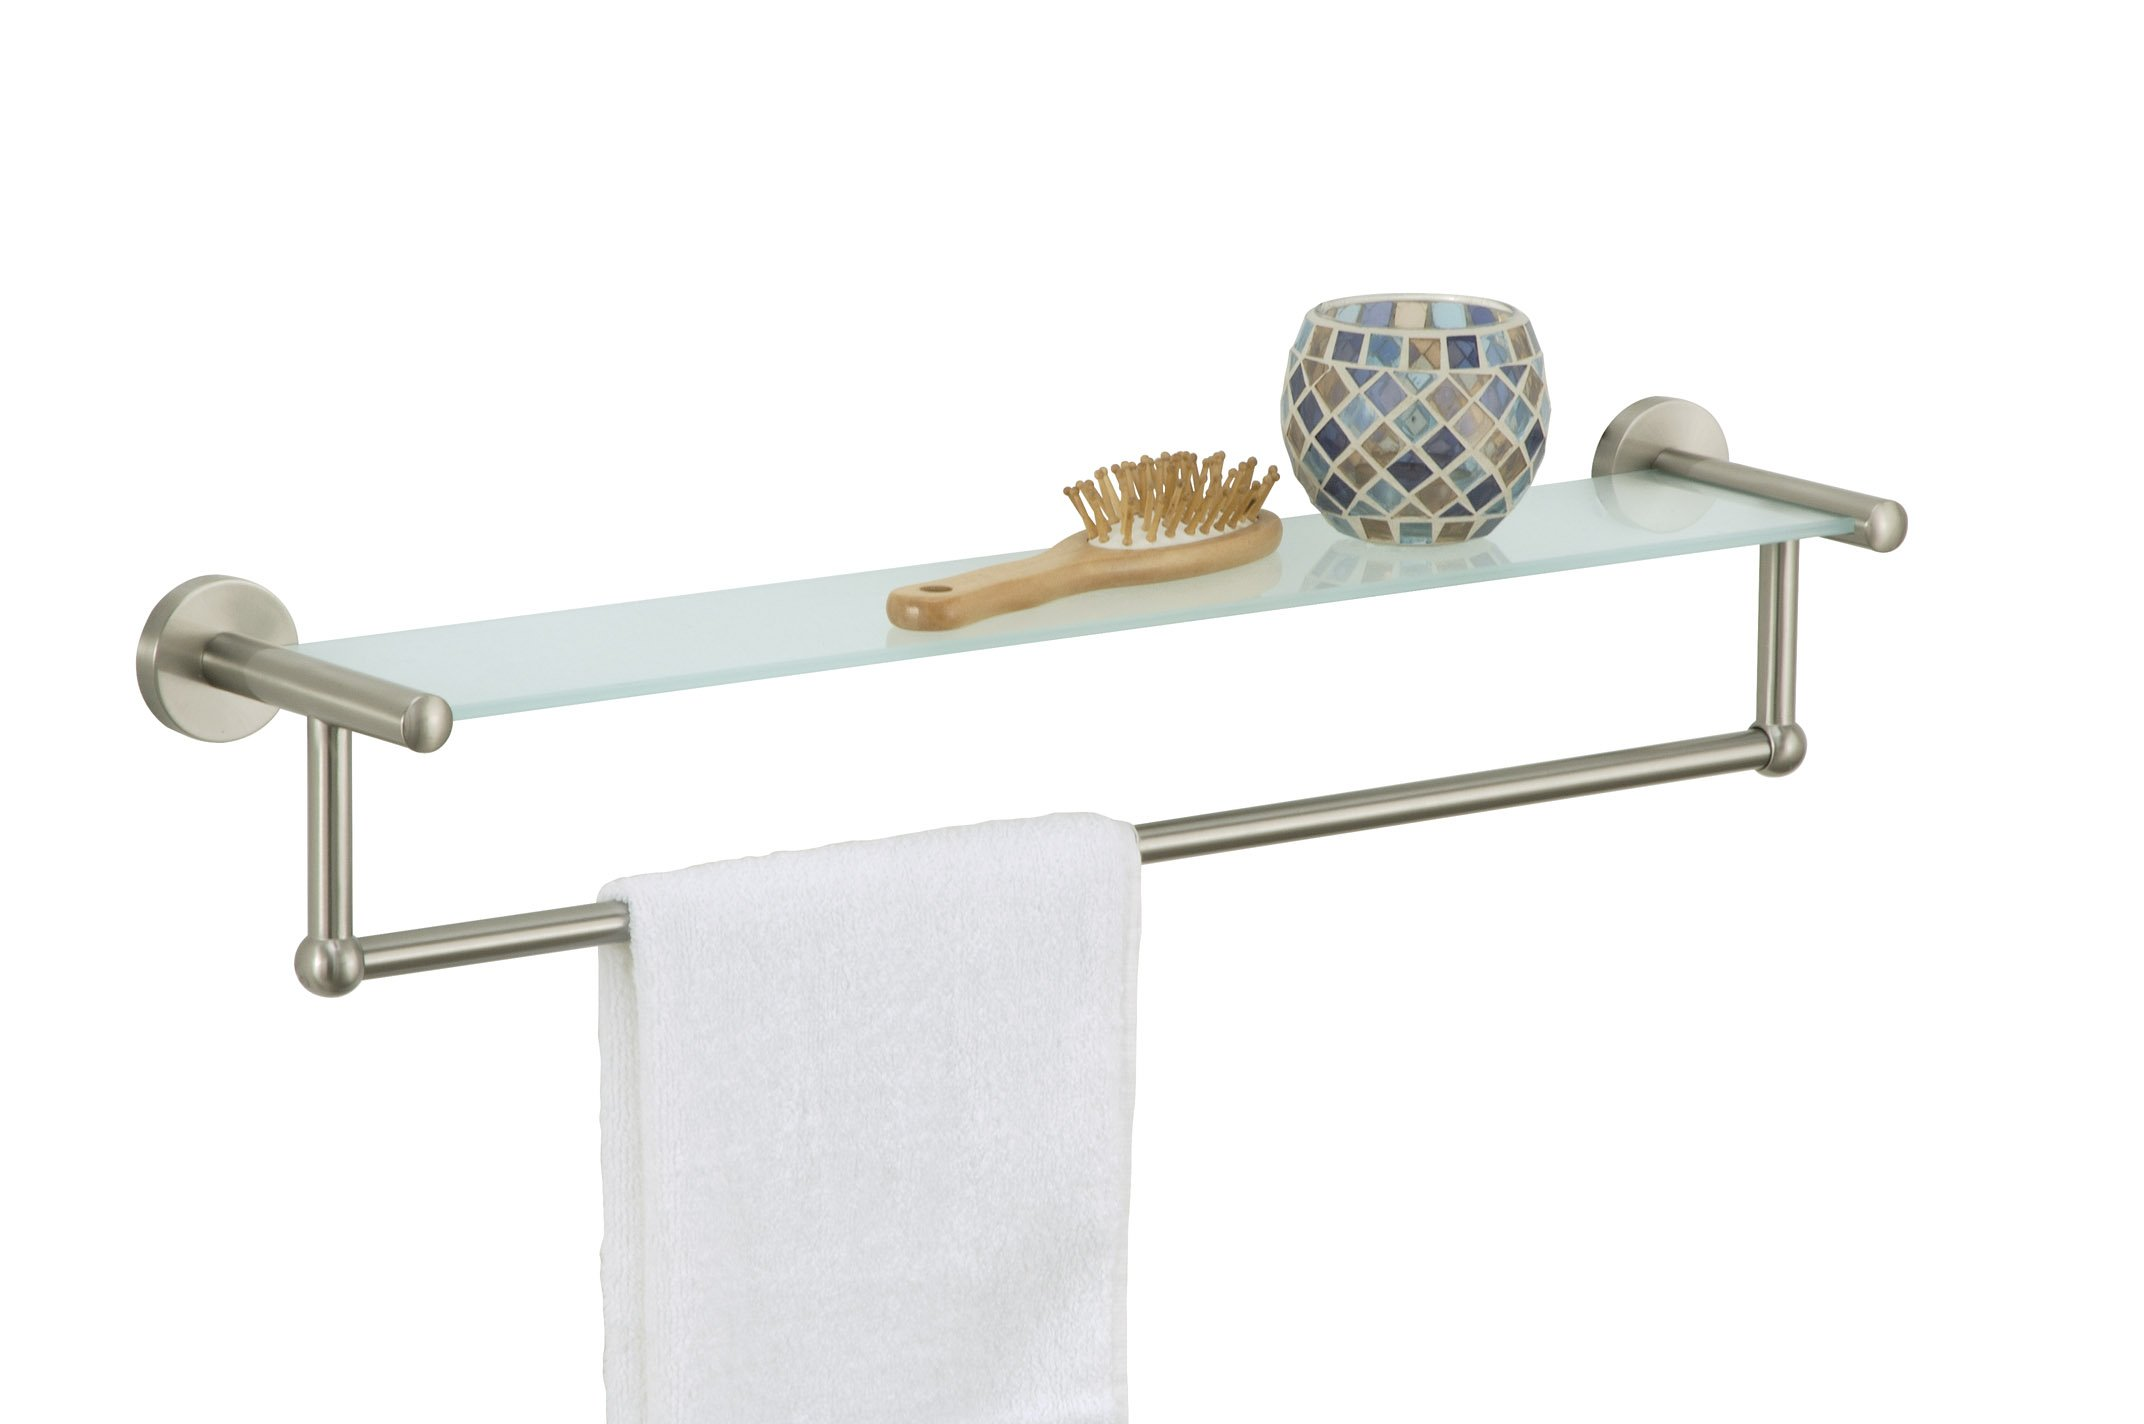 Organize It All Satin Nickel Glass Shelf with Towel Bar by Organize It All